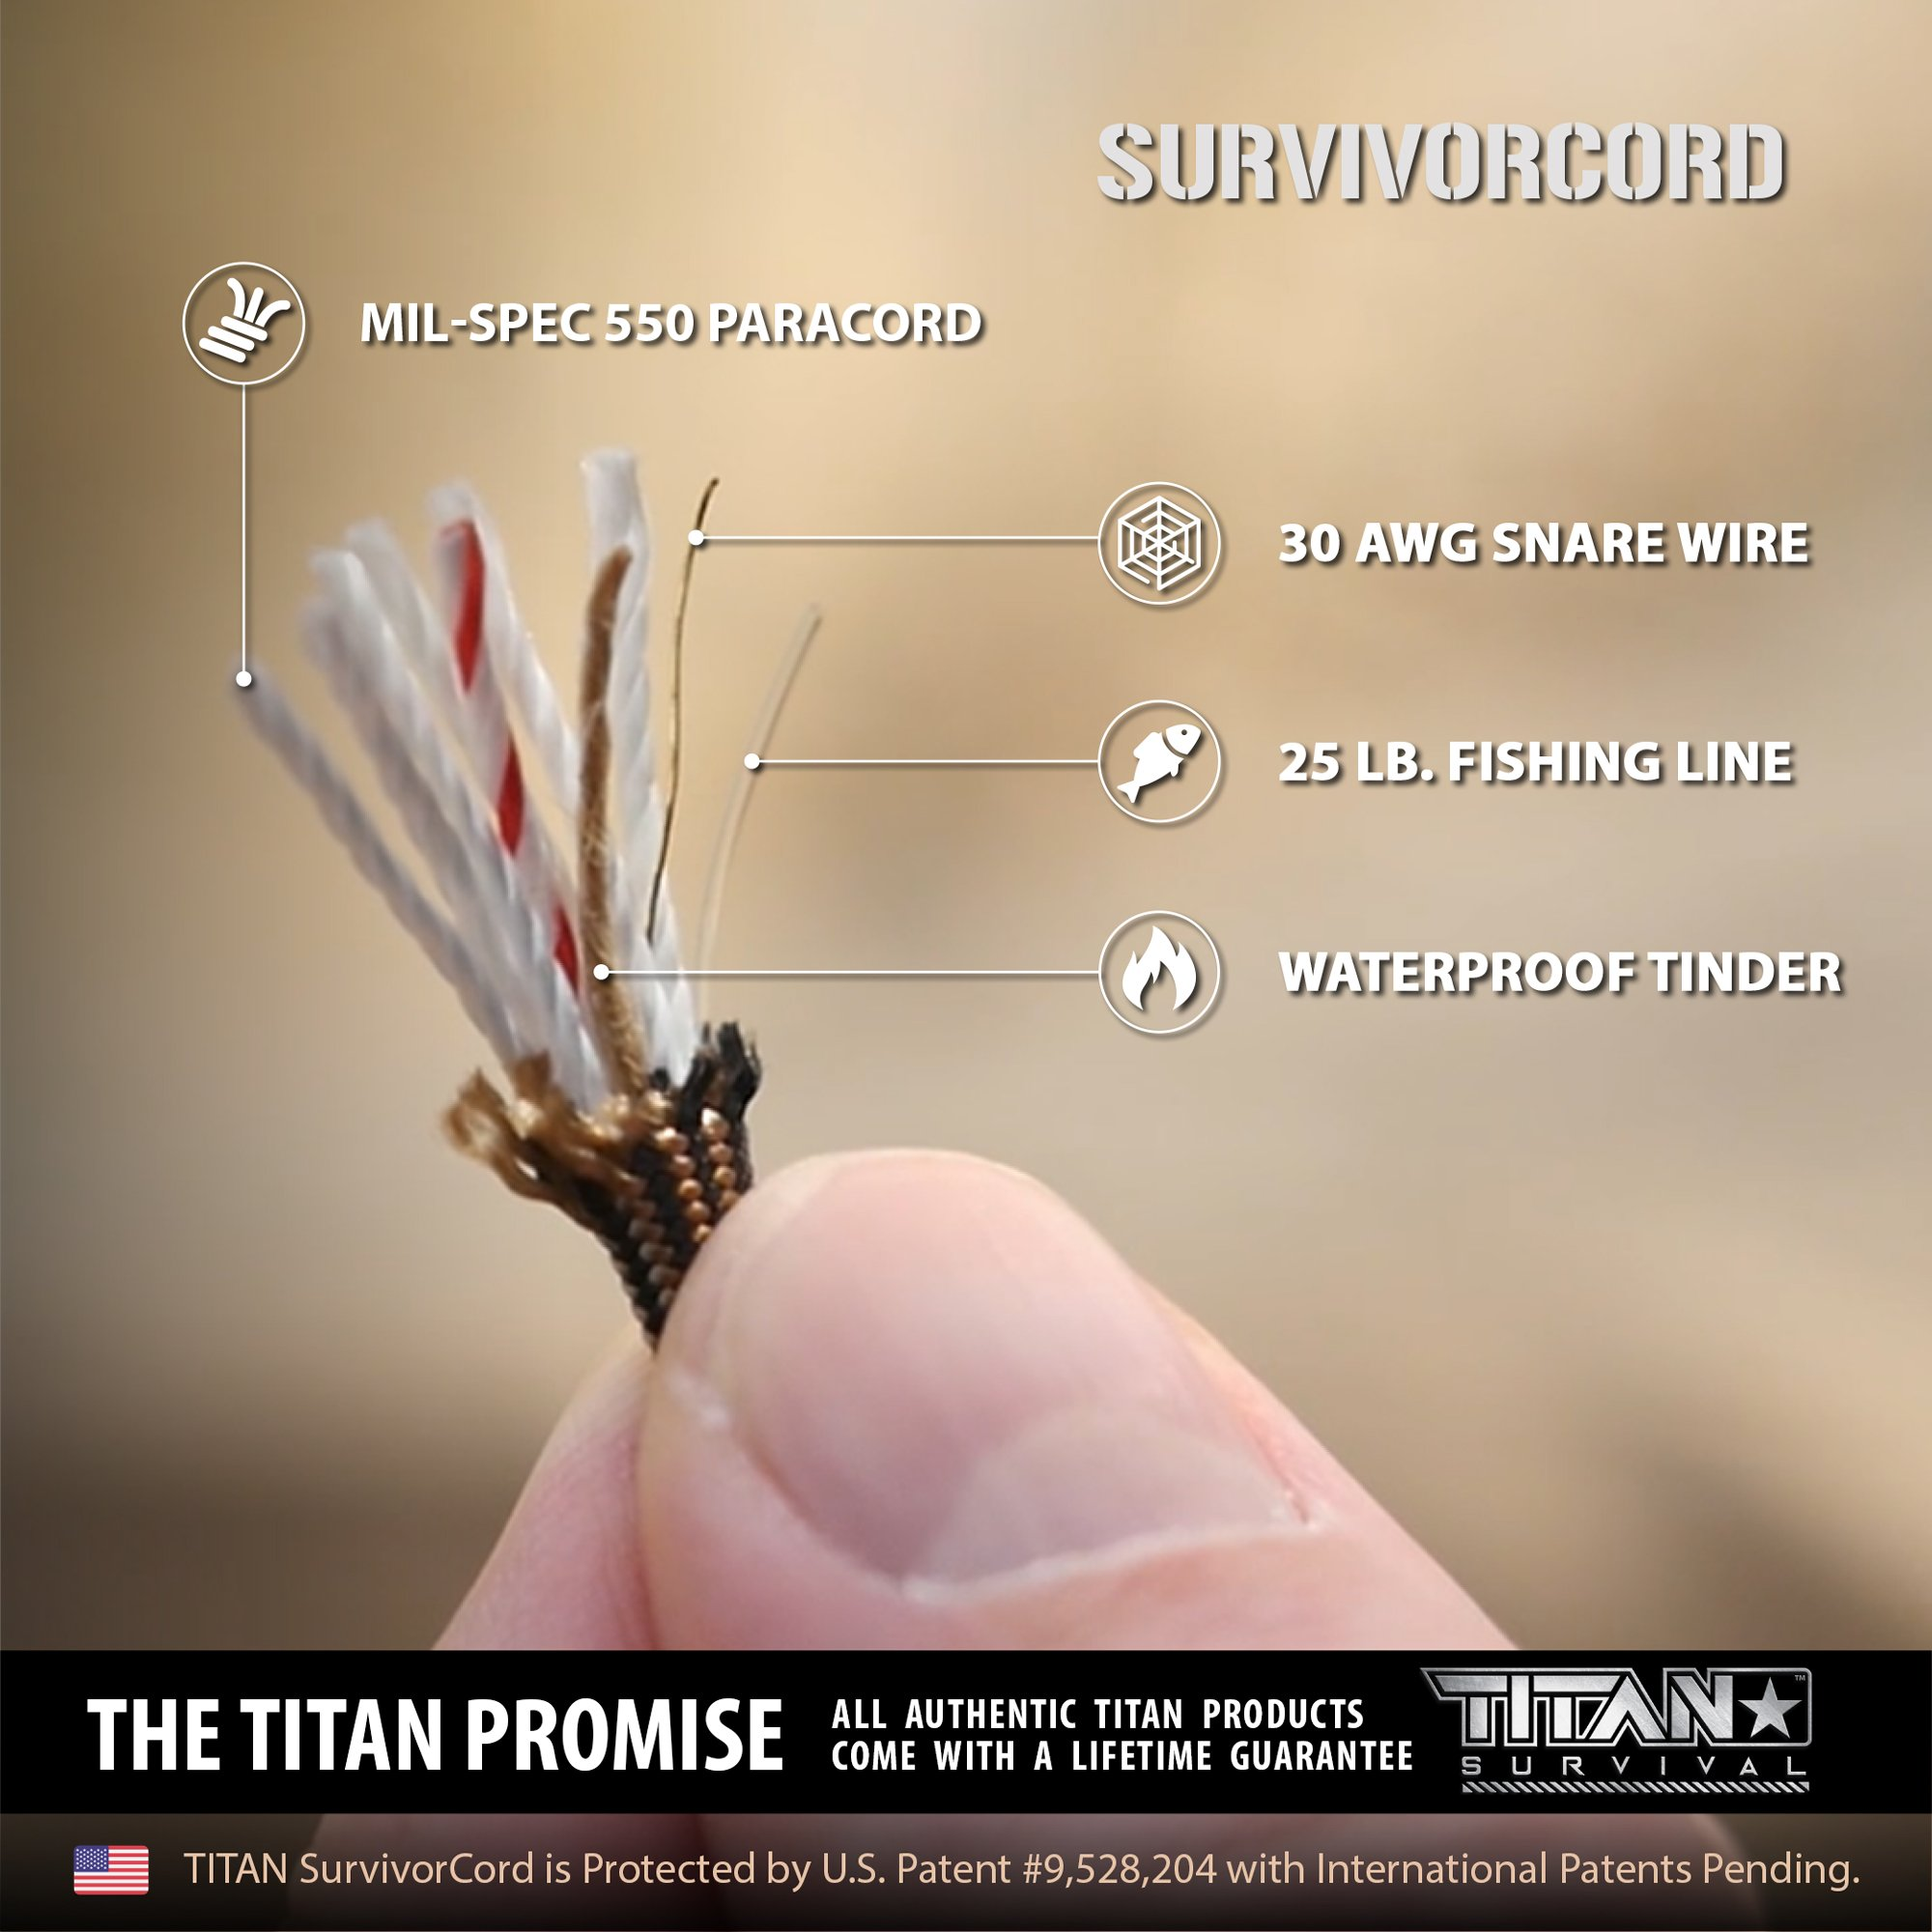 TITAN SurvivorCord | BRONZE | 100 Foot Hank | Patented Military Type III 550 Paracord / Parachute Cord (3/16'' Diameter) with Integrated Fishing Line, Fire-Starter, and Snare Wire by Titan Paracord (Image #2)